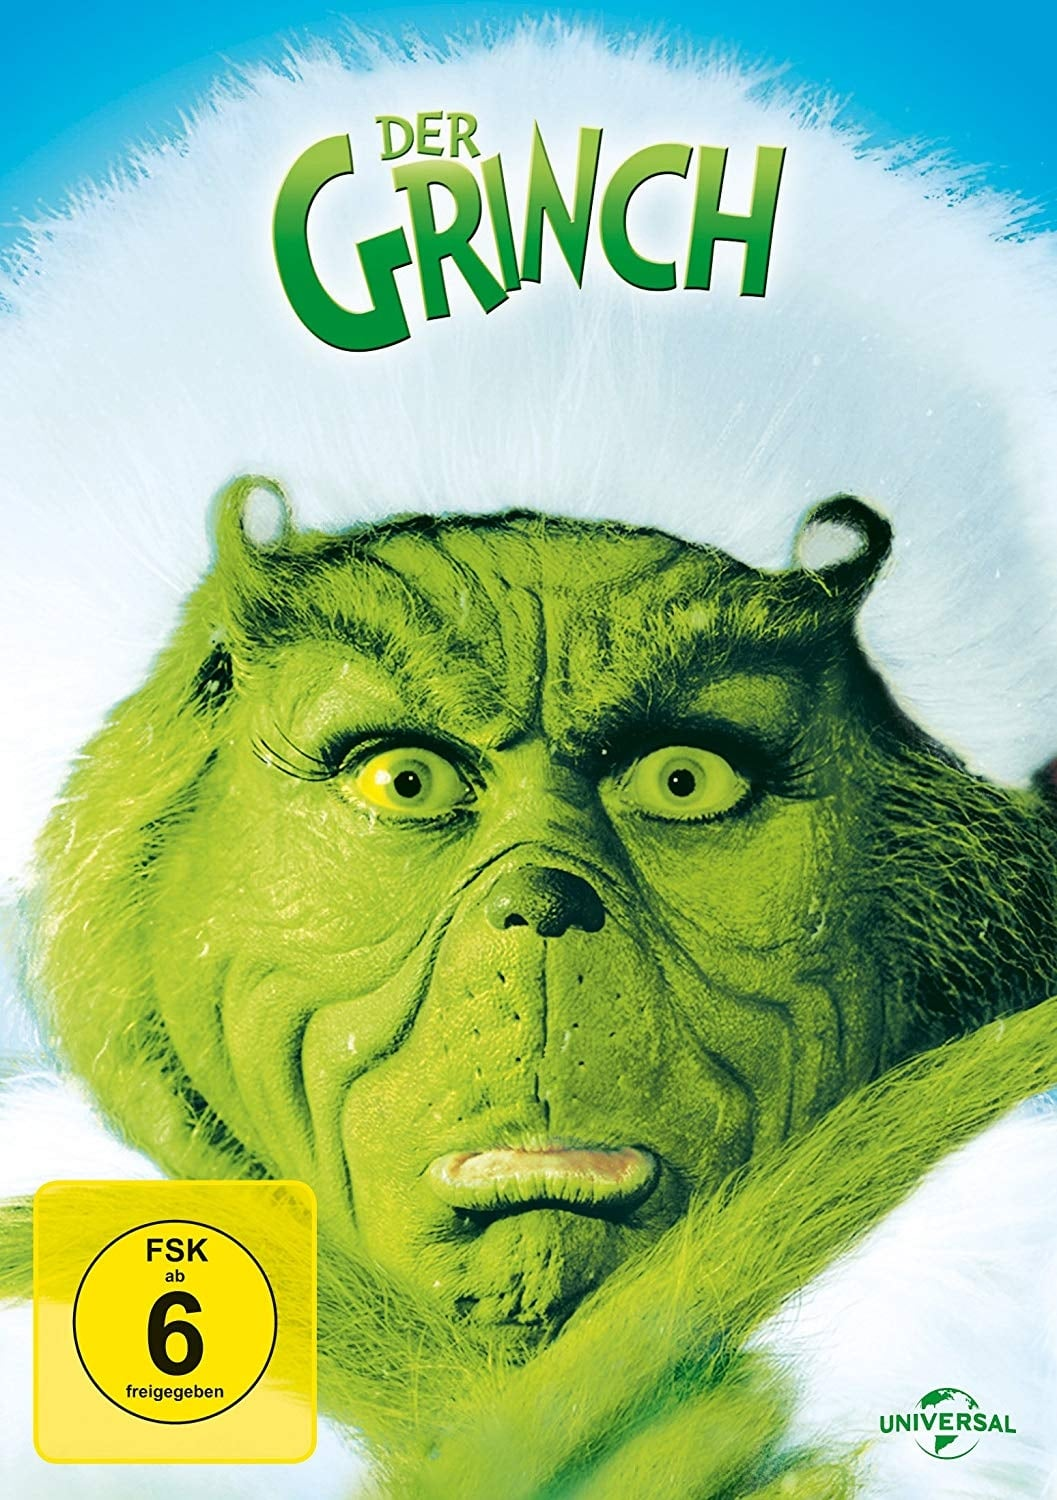 Poster and image movie Film Grinch - The Grinch - The Grinch 2018